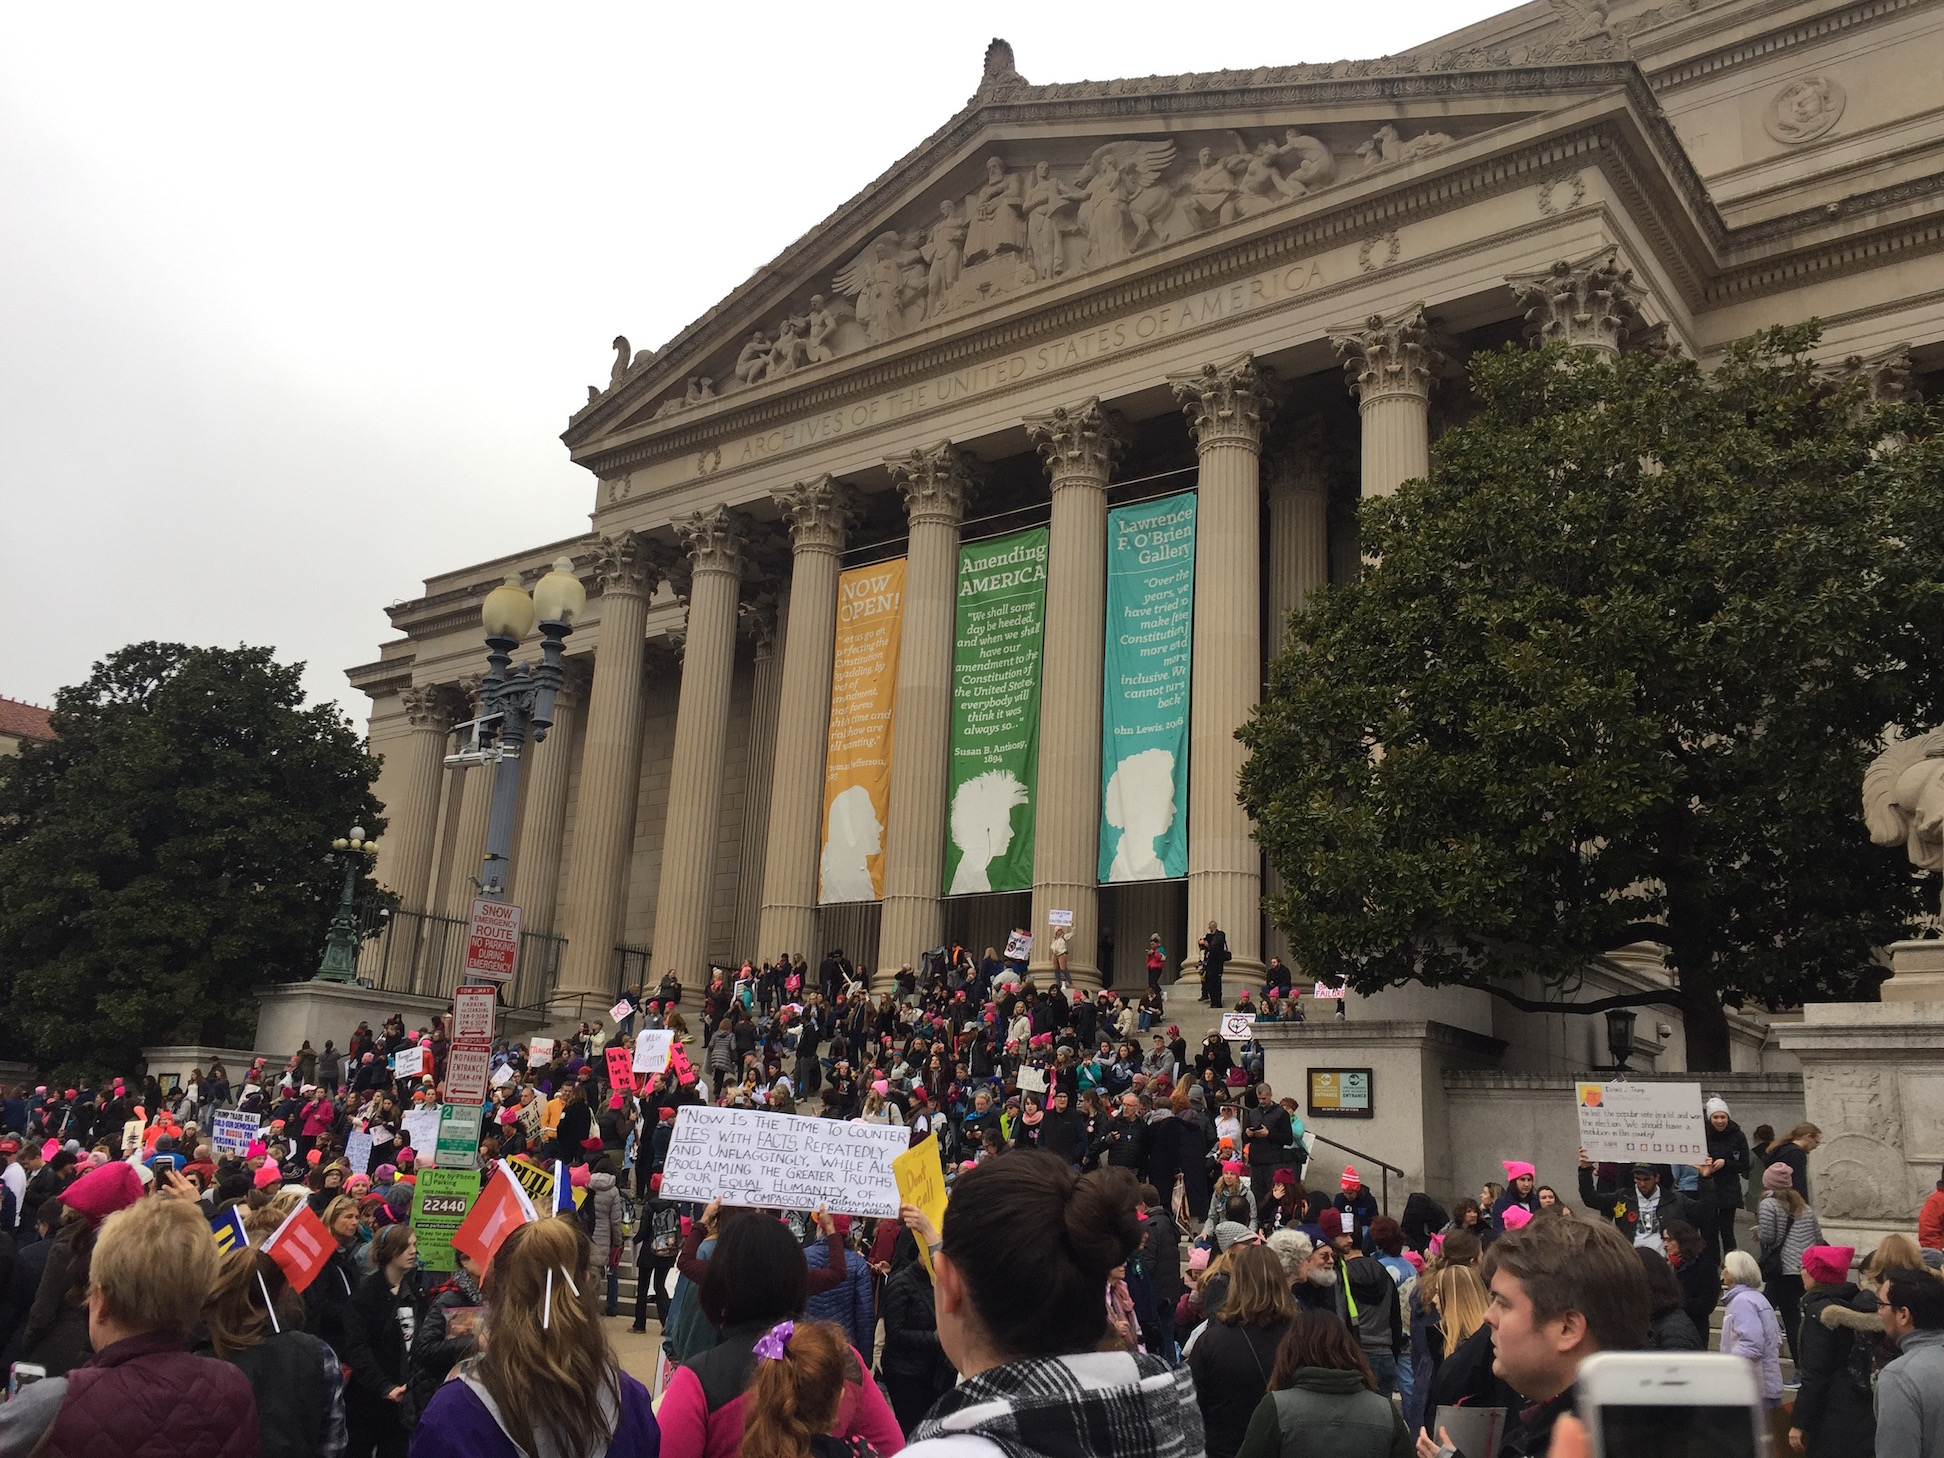 Protesters+gather+on+the+steps+of+a+museum.